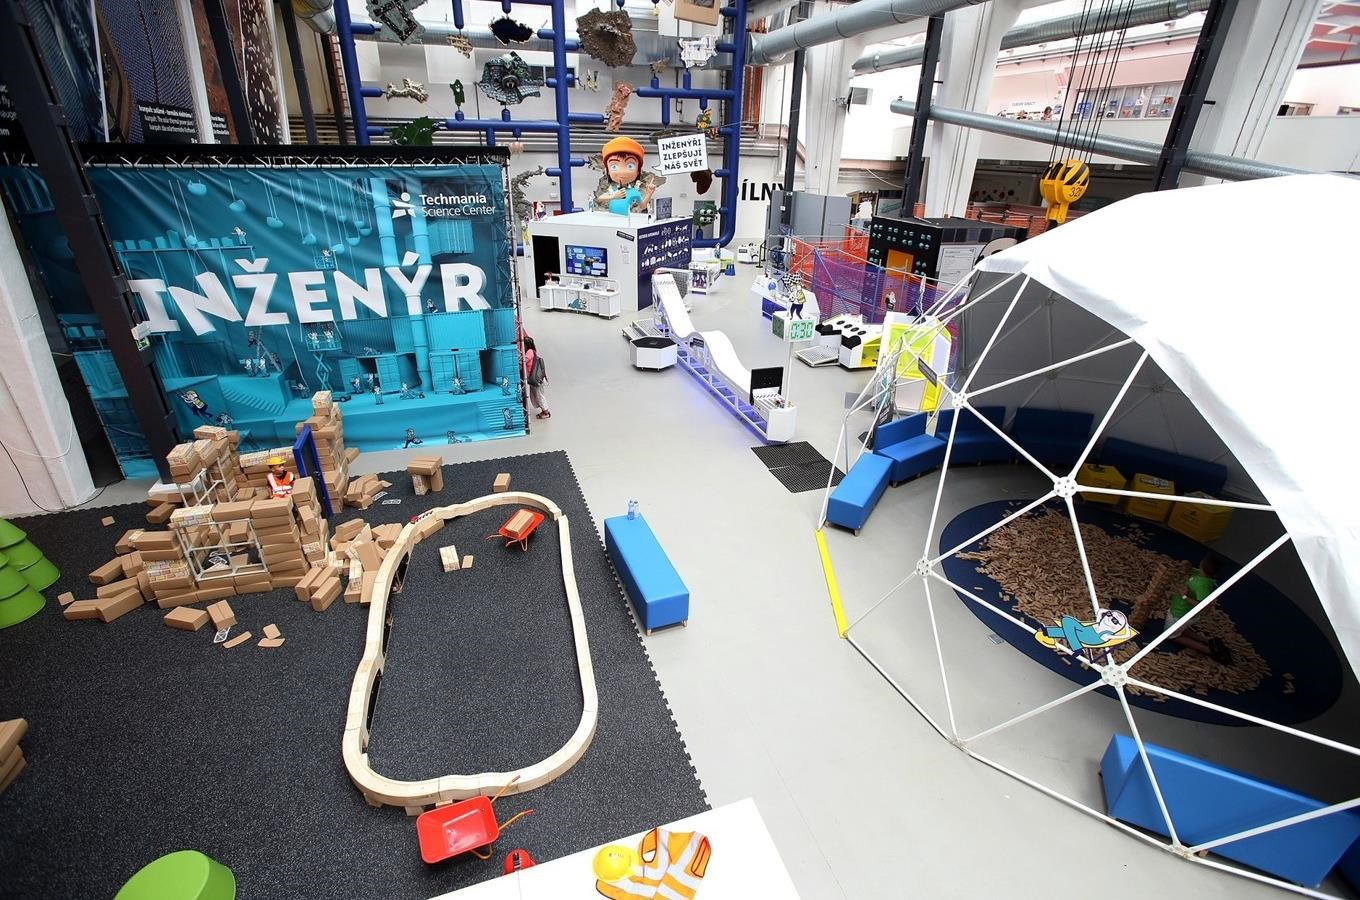 Expozice Inženýr - Techmania Science Center